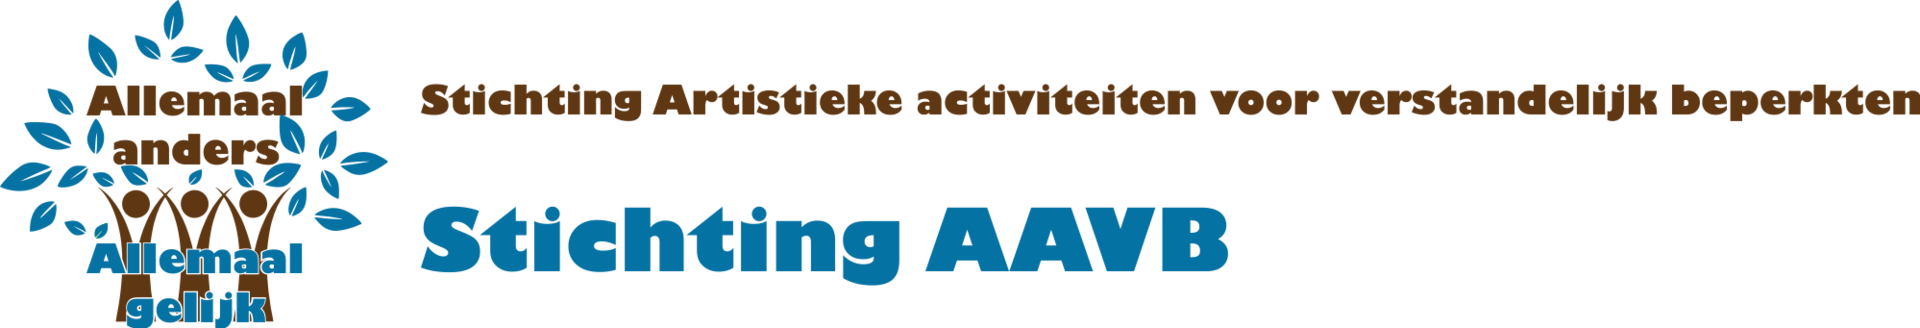 Stichting AAVB